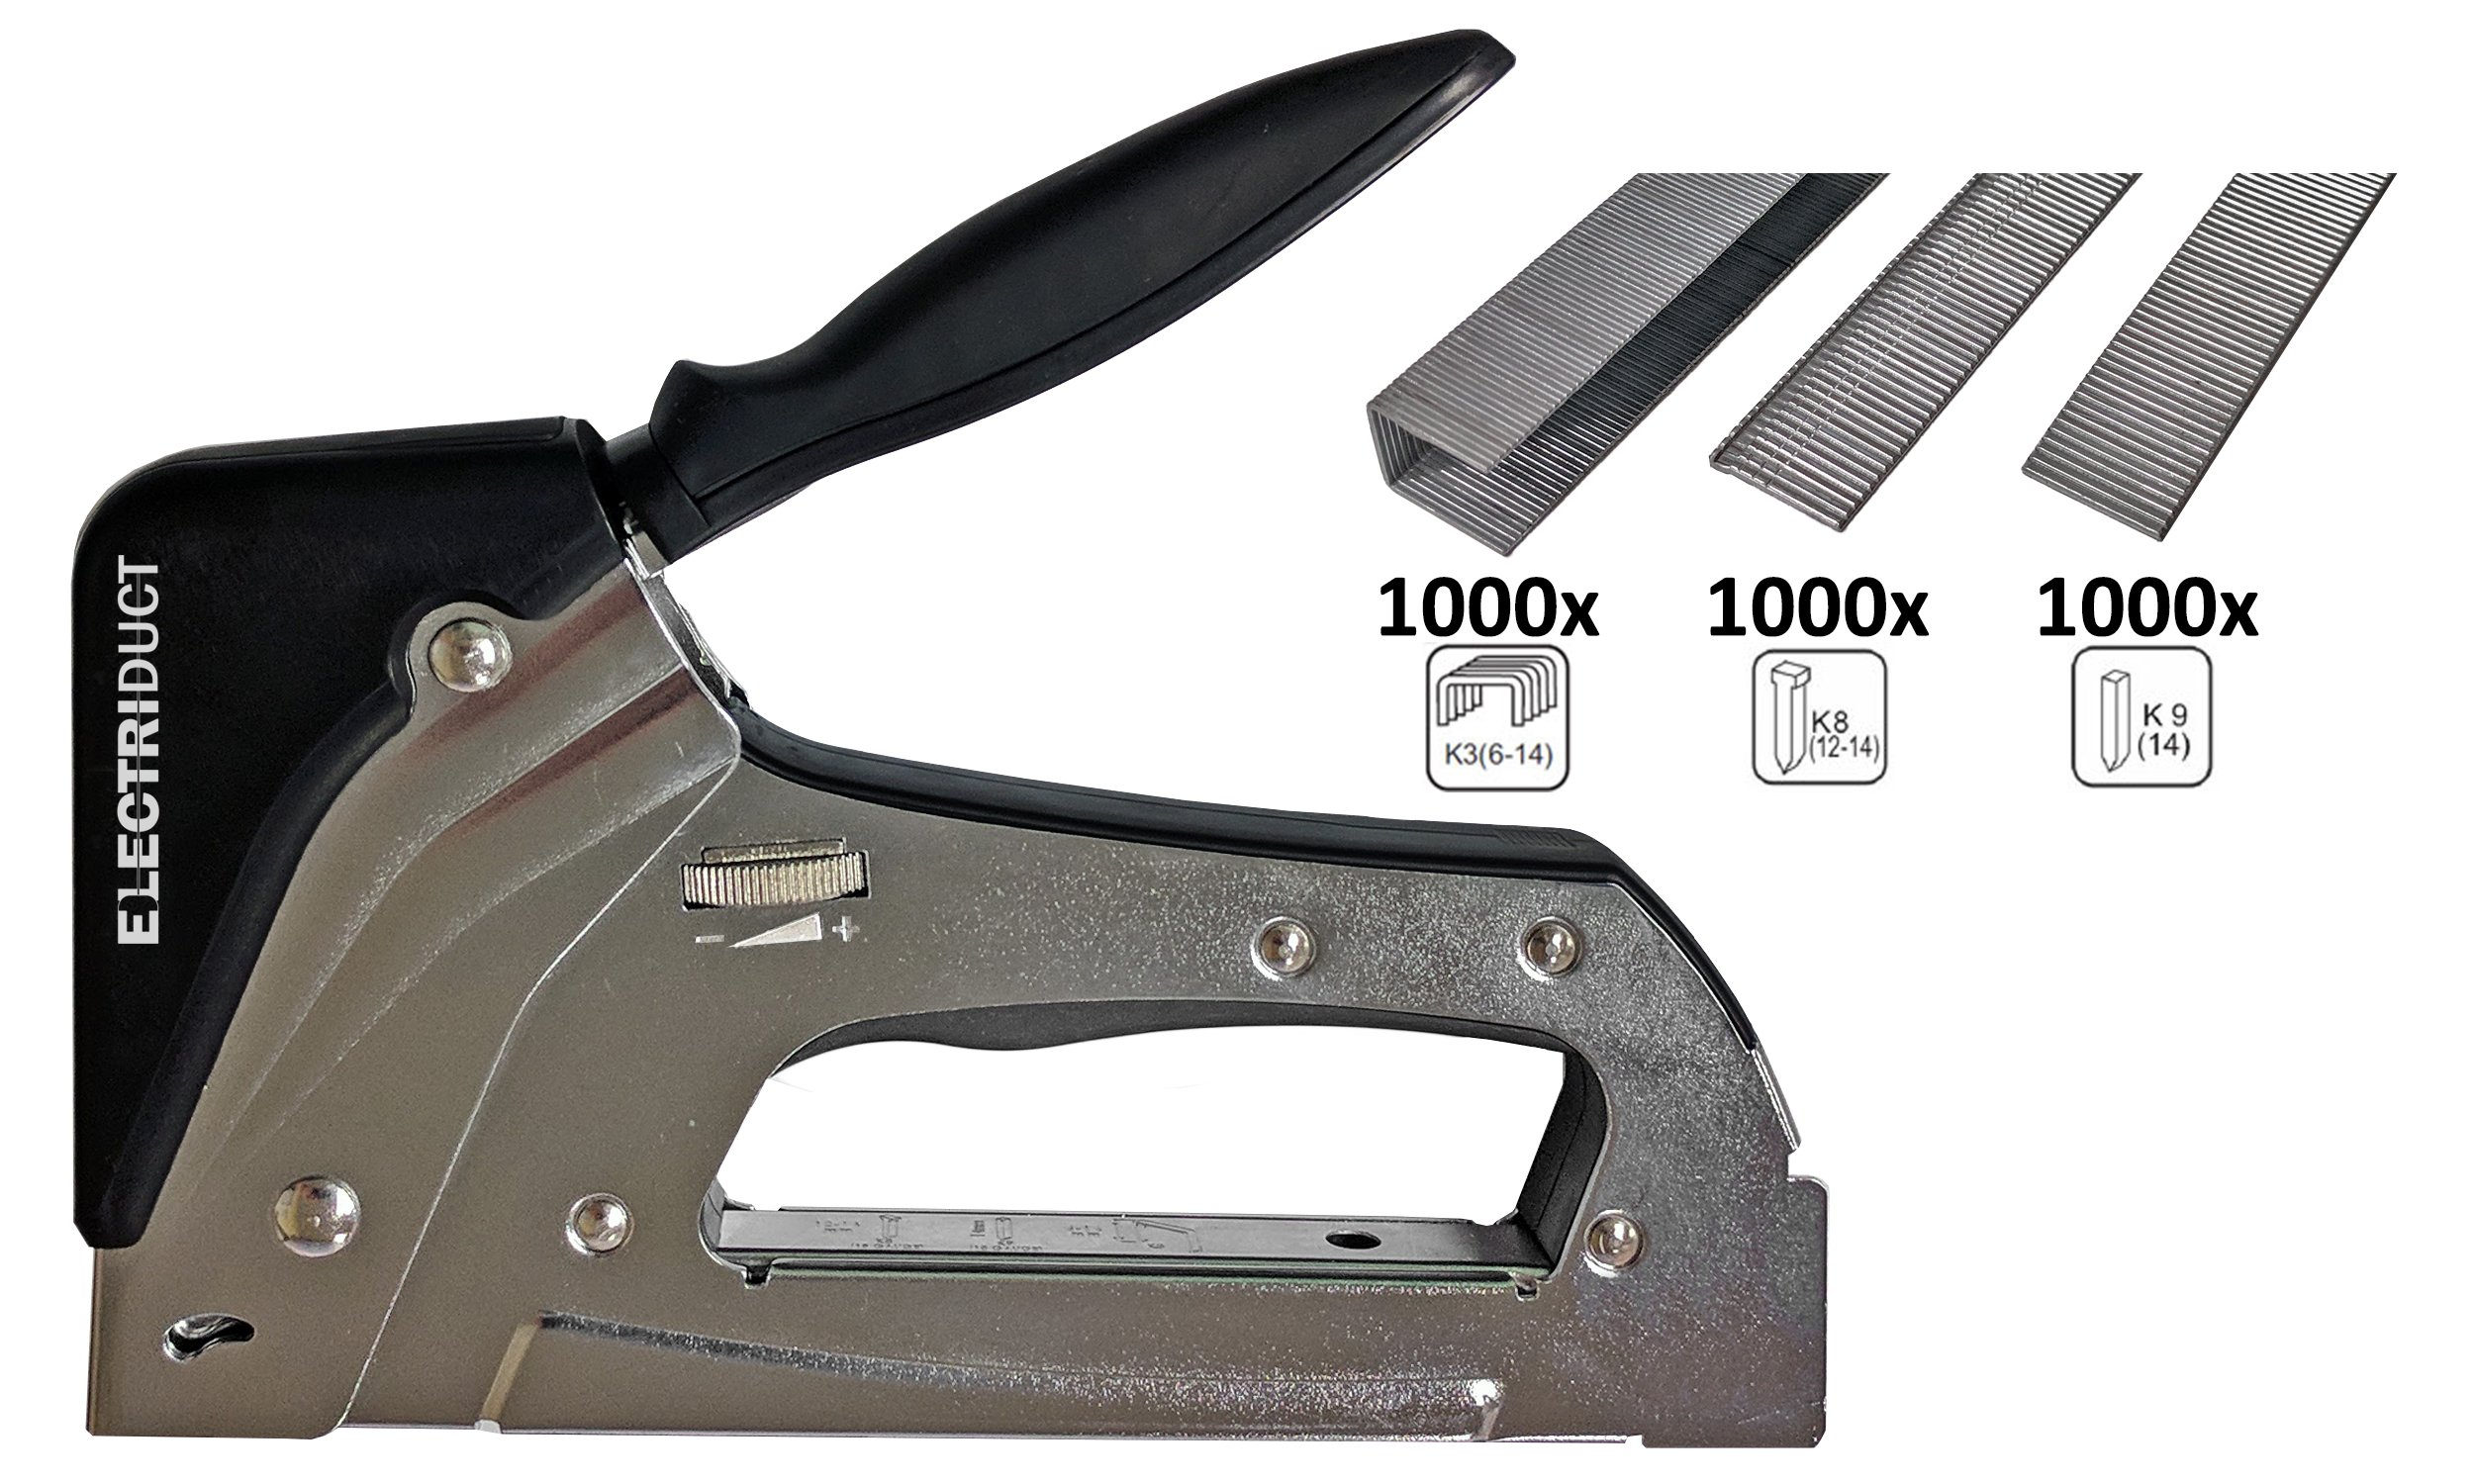 Metal 3 in 1 Staple Gun TMZ3.1 Model with 1000 Staples, 1000 Nails & 1000 Brad Nails